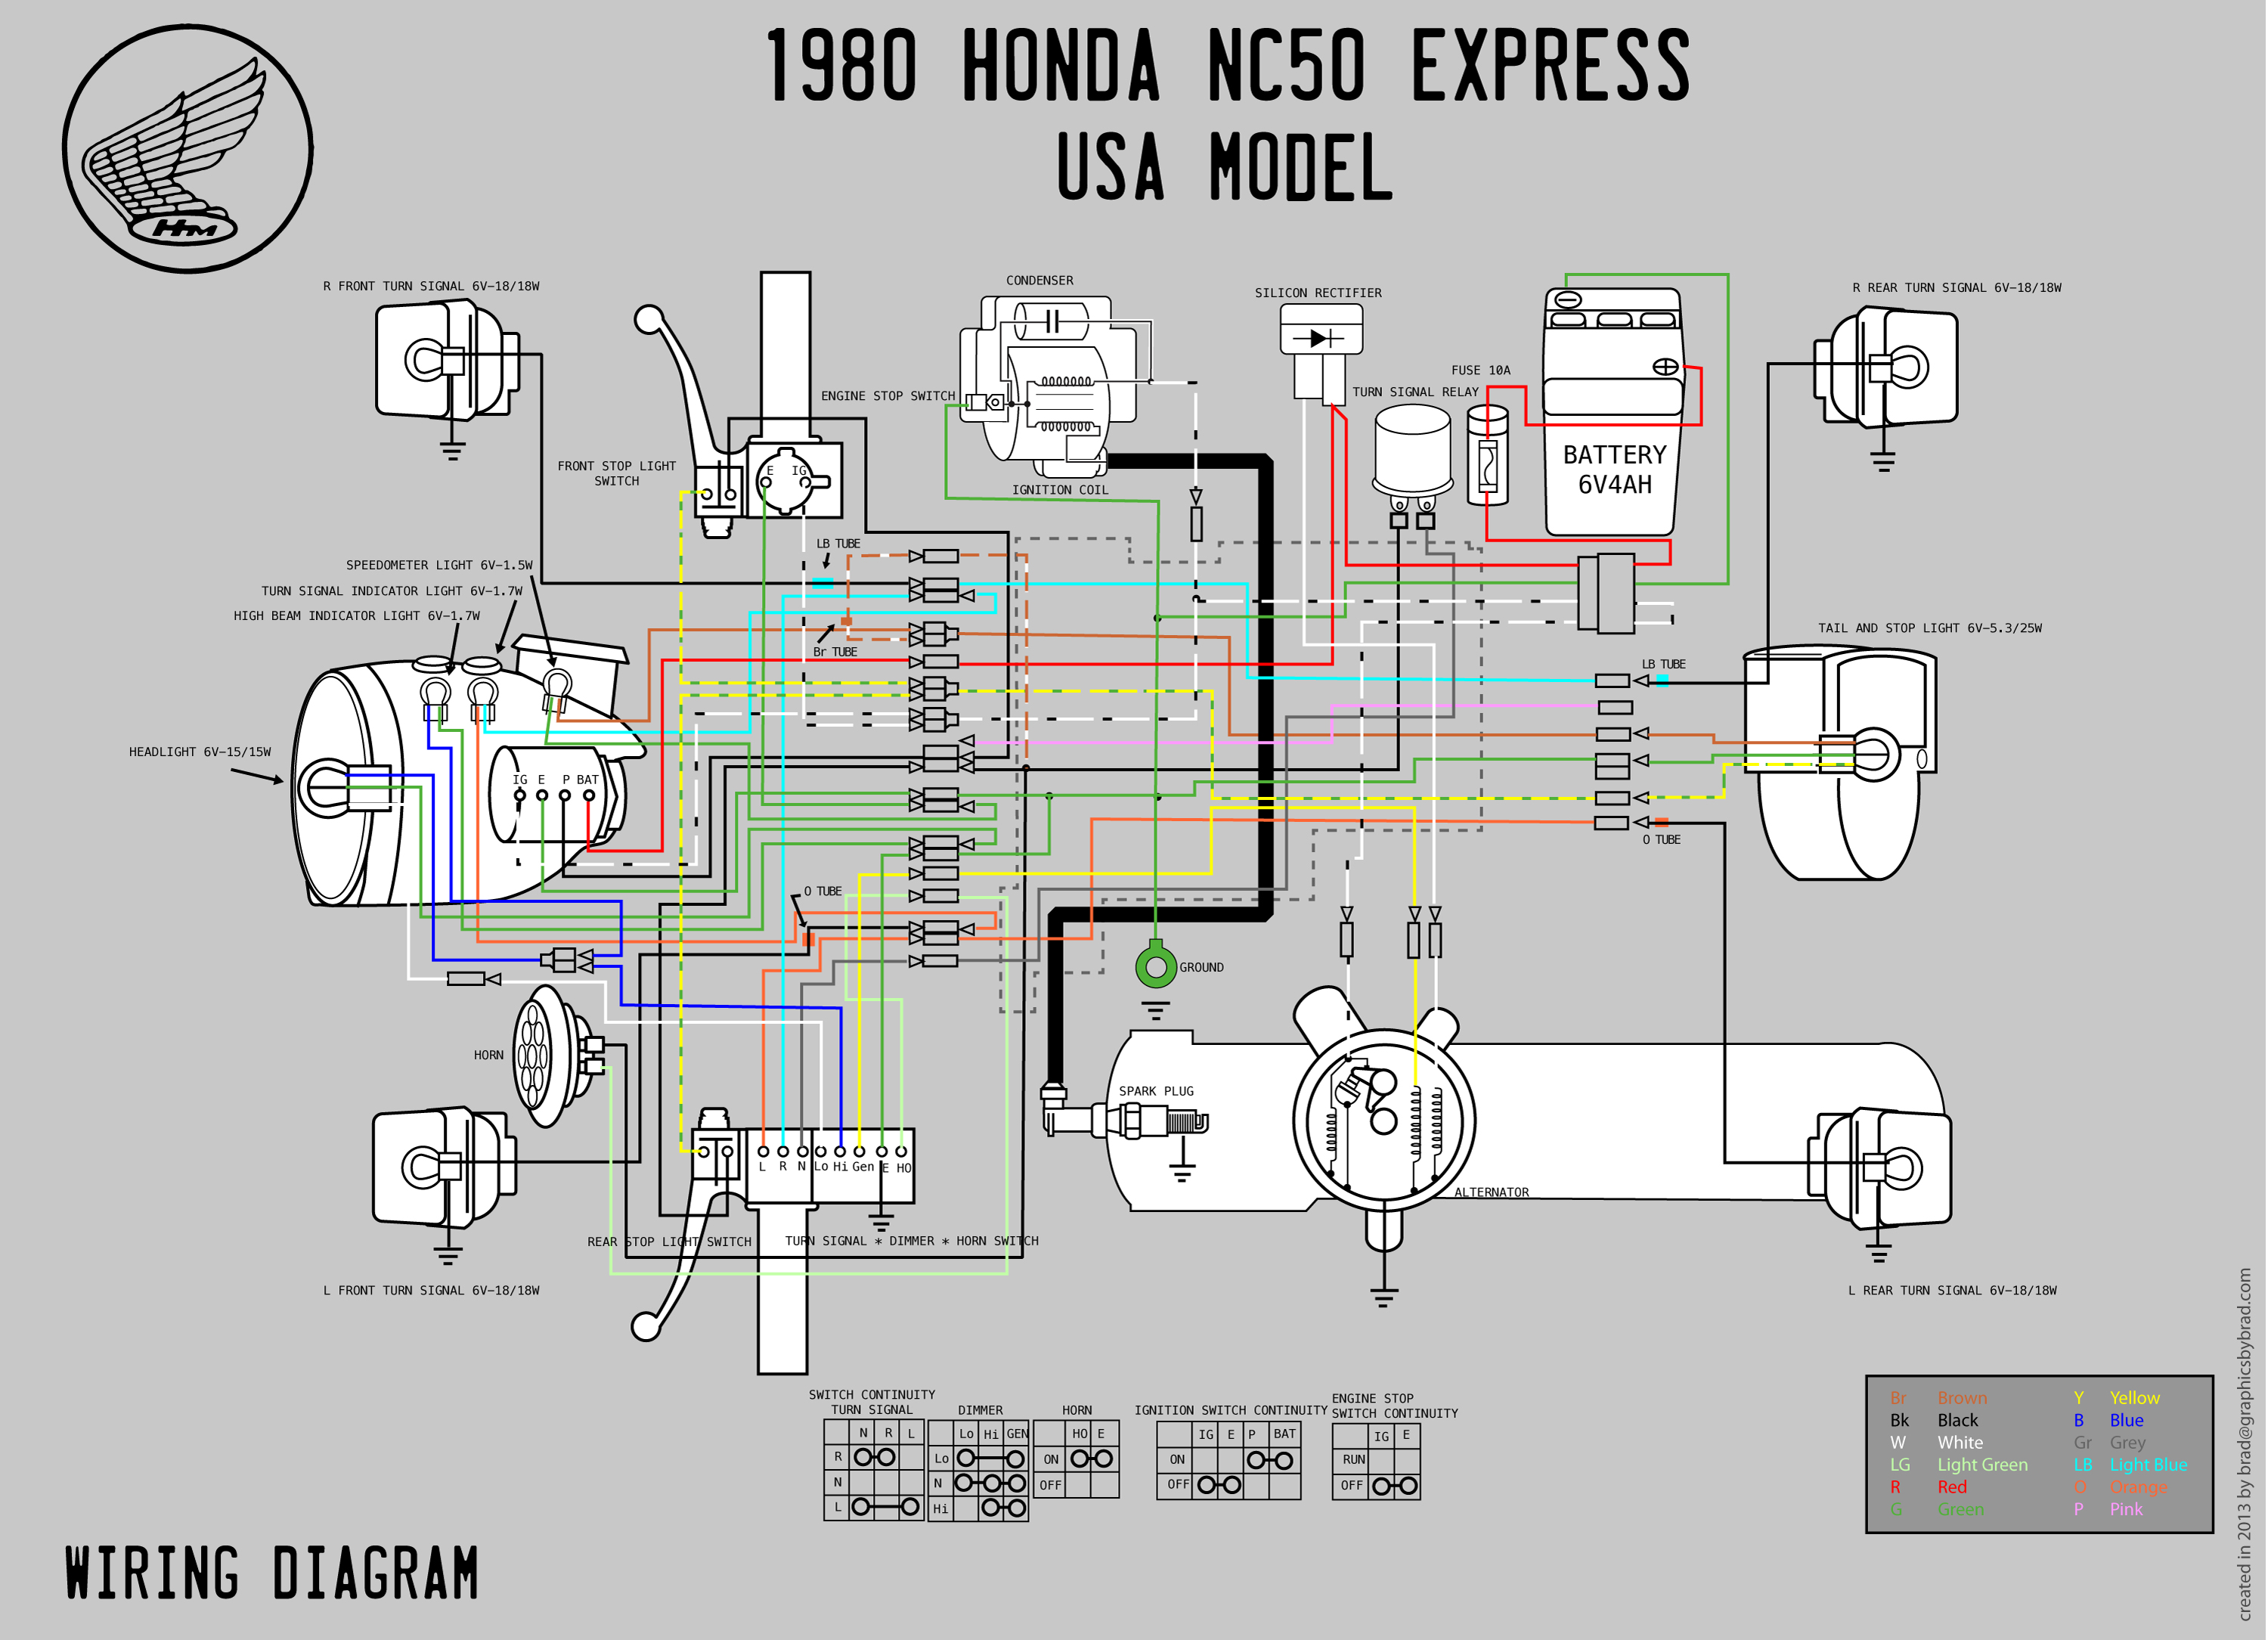 1984 Honda Express Wiring Diagram Worksheet And Hondaexpresssparkplugdiagramjpg 1978 Nc50 Detailed Schematics Rh Yogajourneymd Com Urban